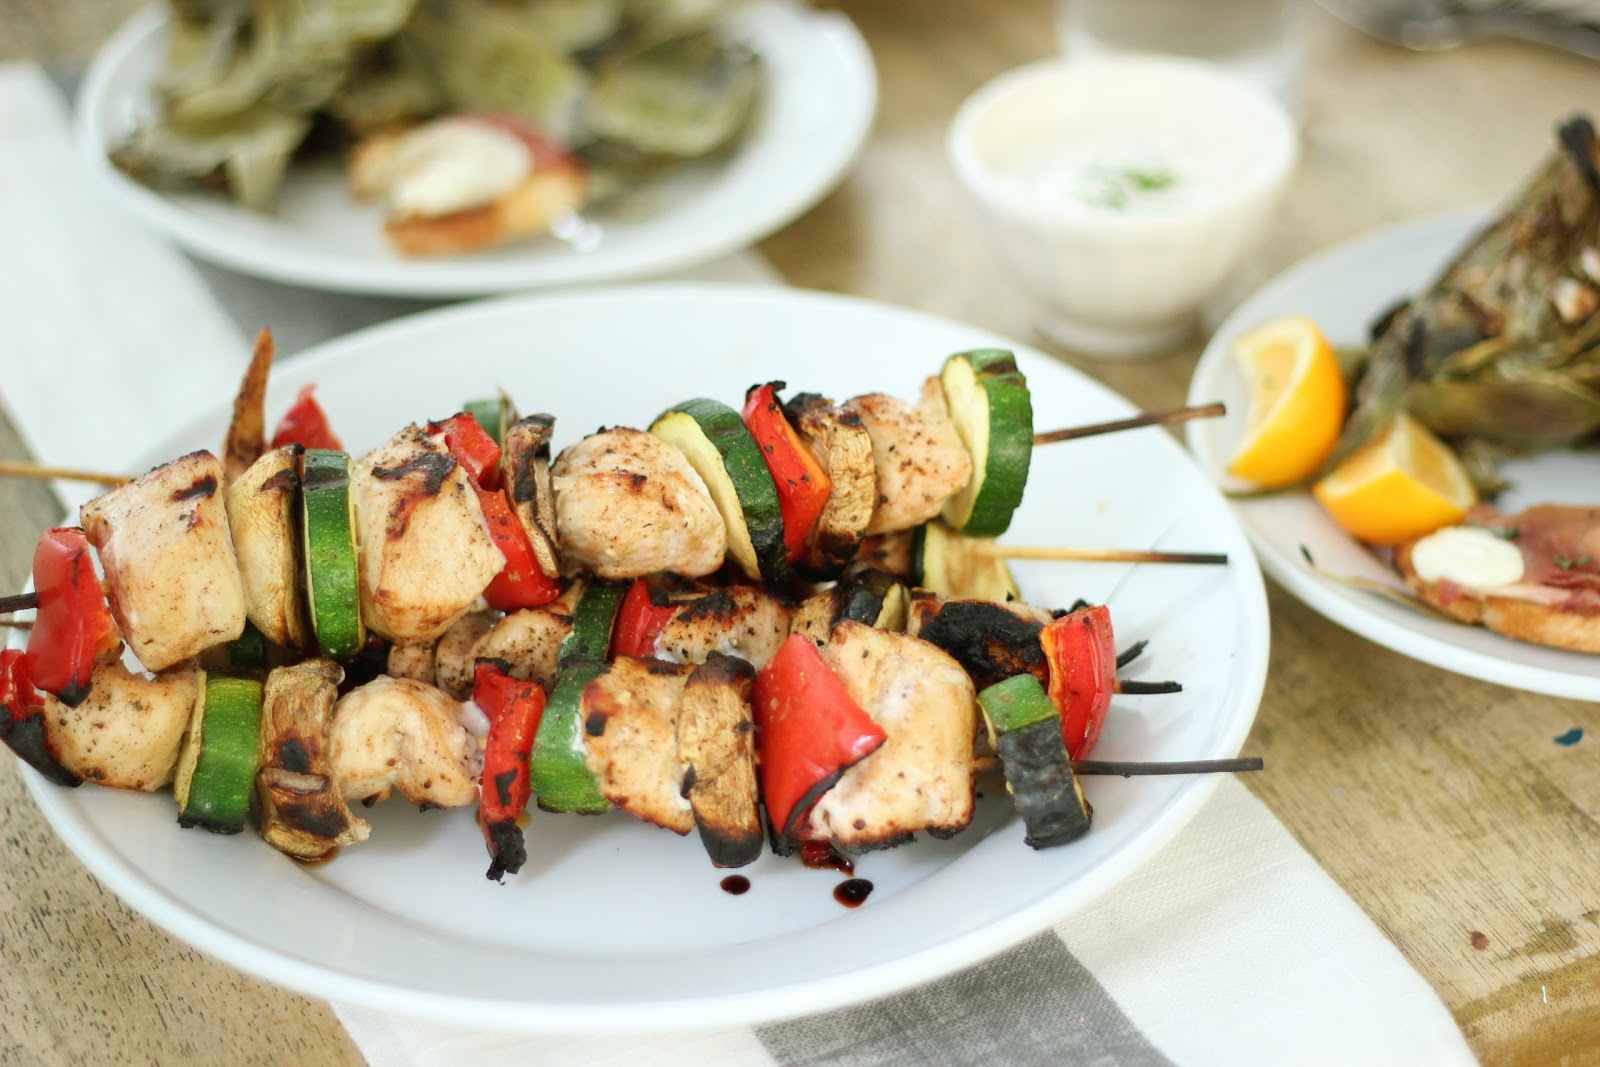 Grill Up Some Healthy Summer Meals